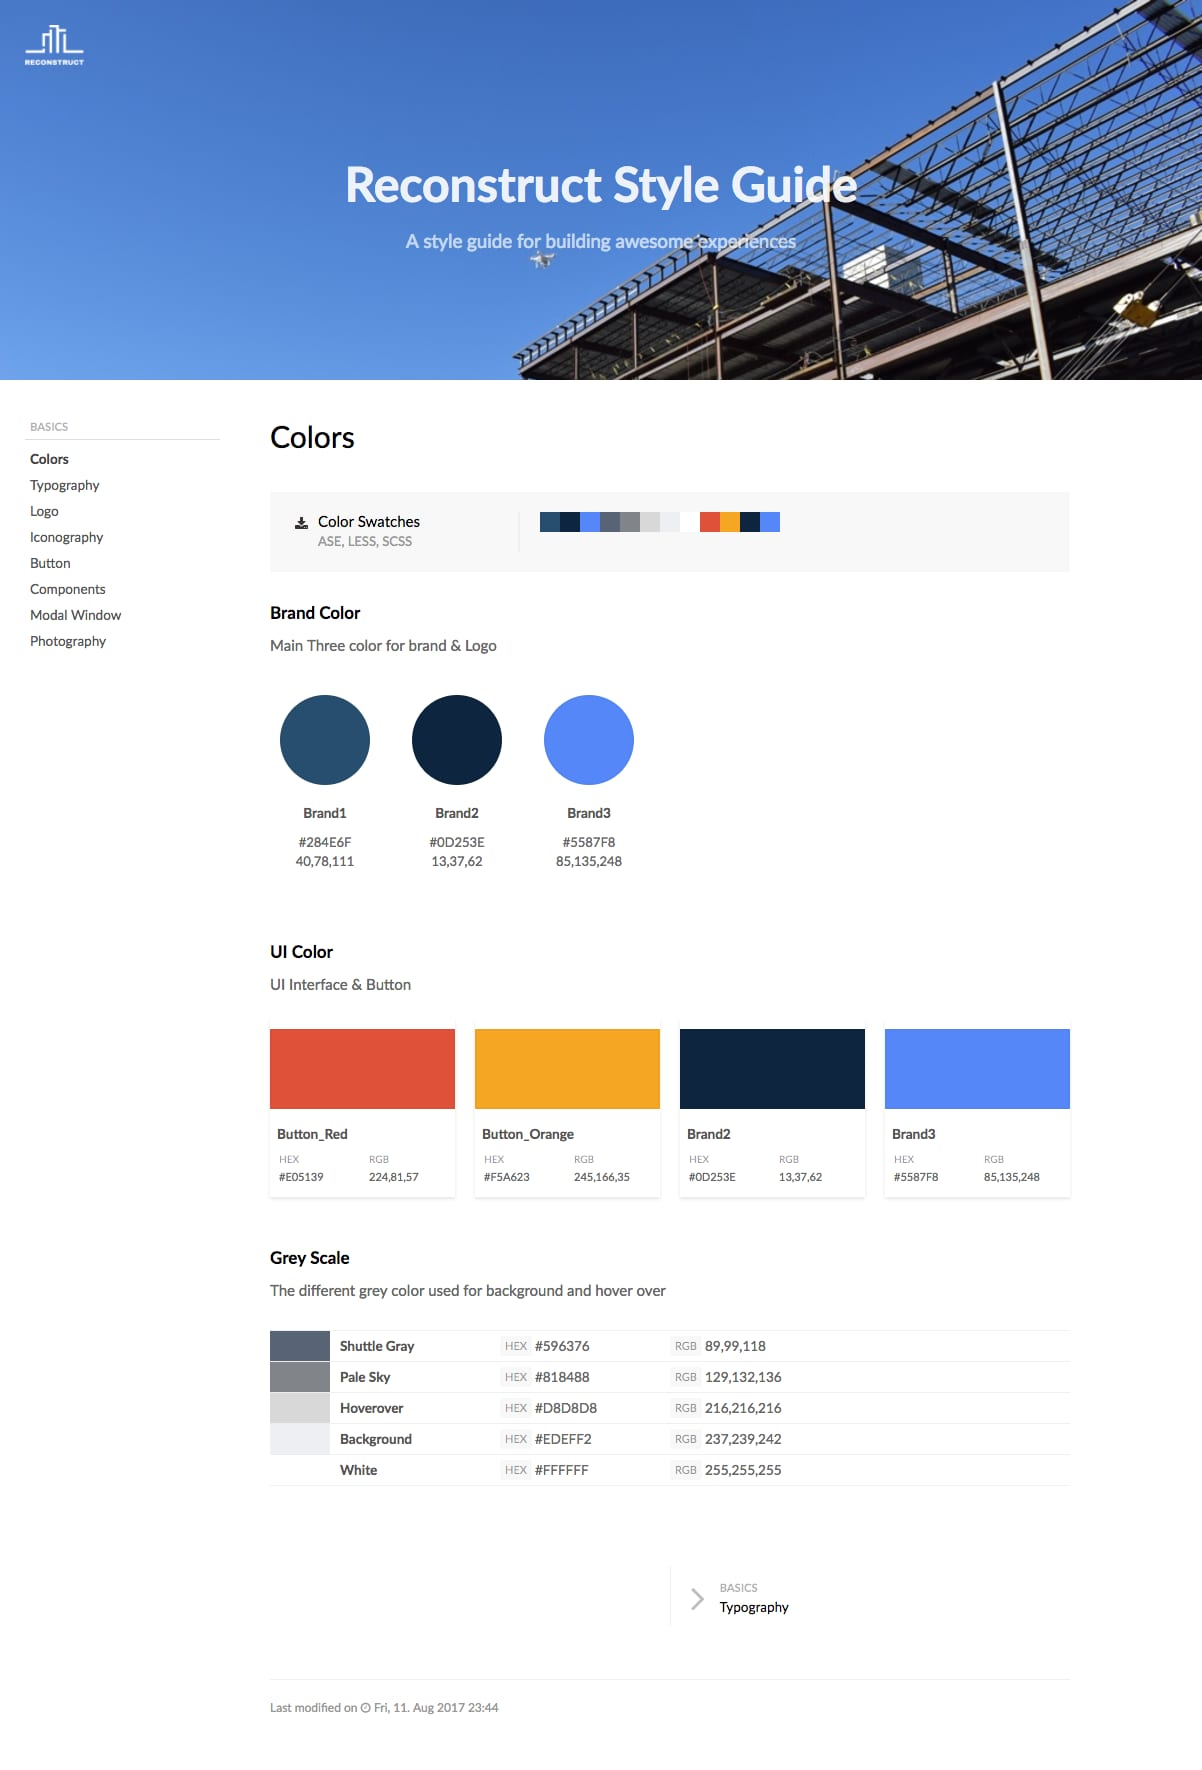 Reconstruct Style Guide